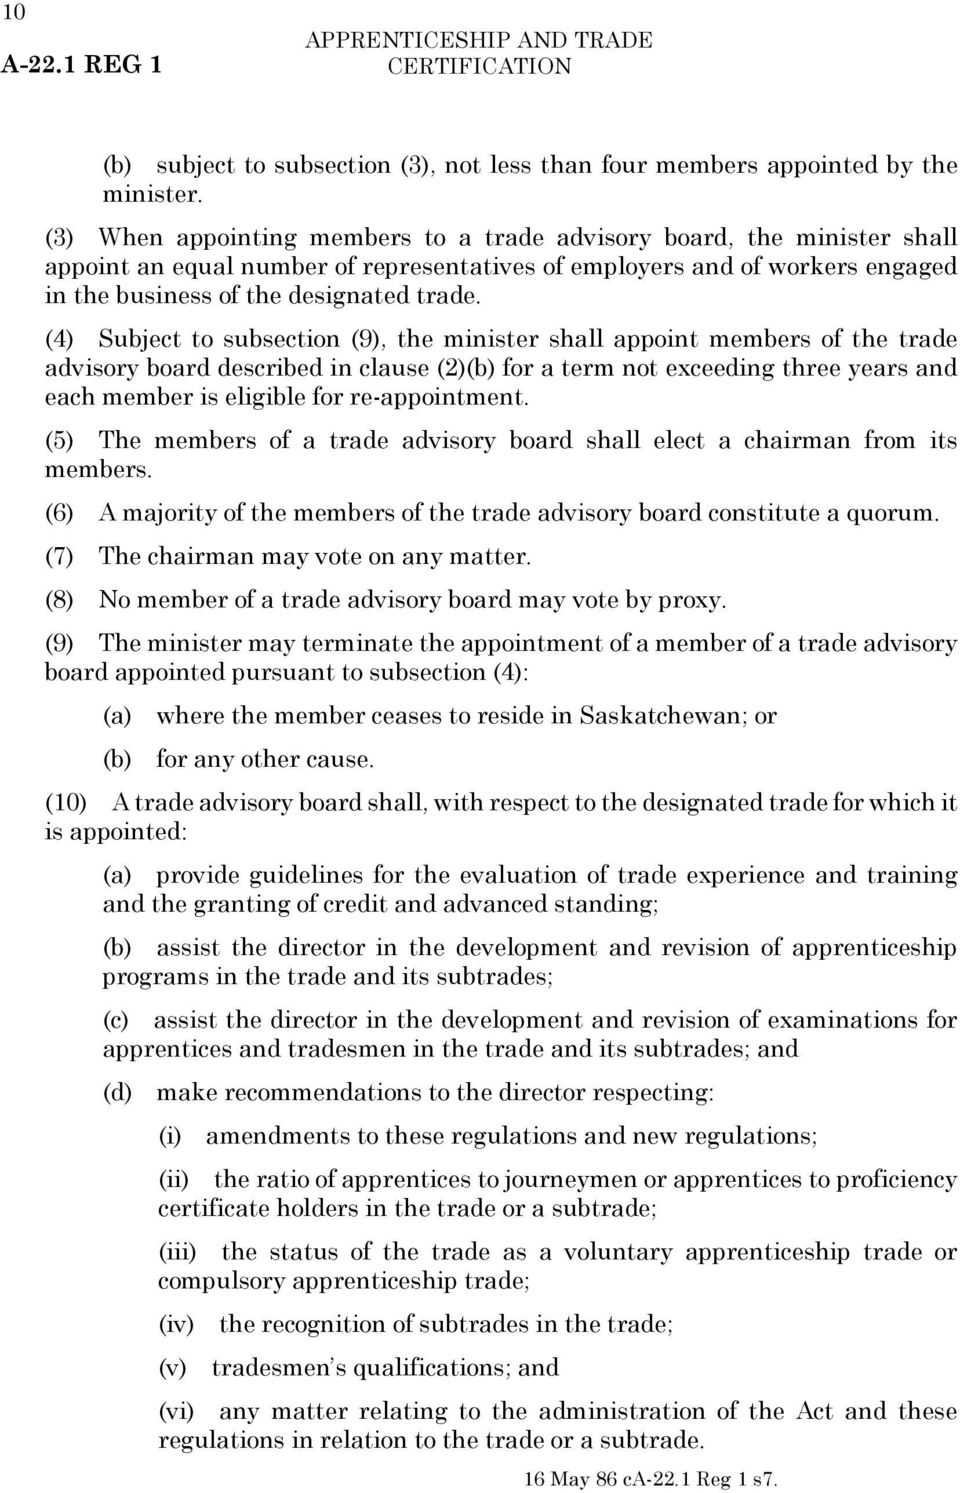 (4) Subject to subsection (9), the minister shall appoint members of the trade advisory board described in clause (2)(b) for a term not exceeding three years and each member is eligible for